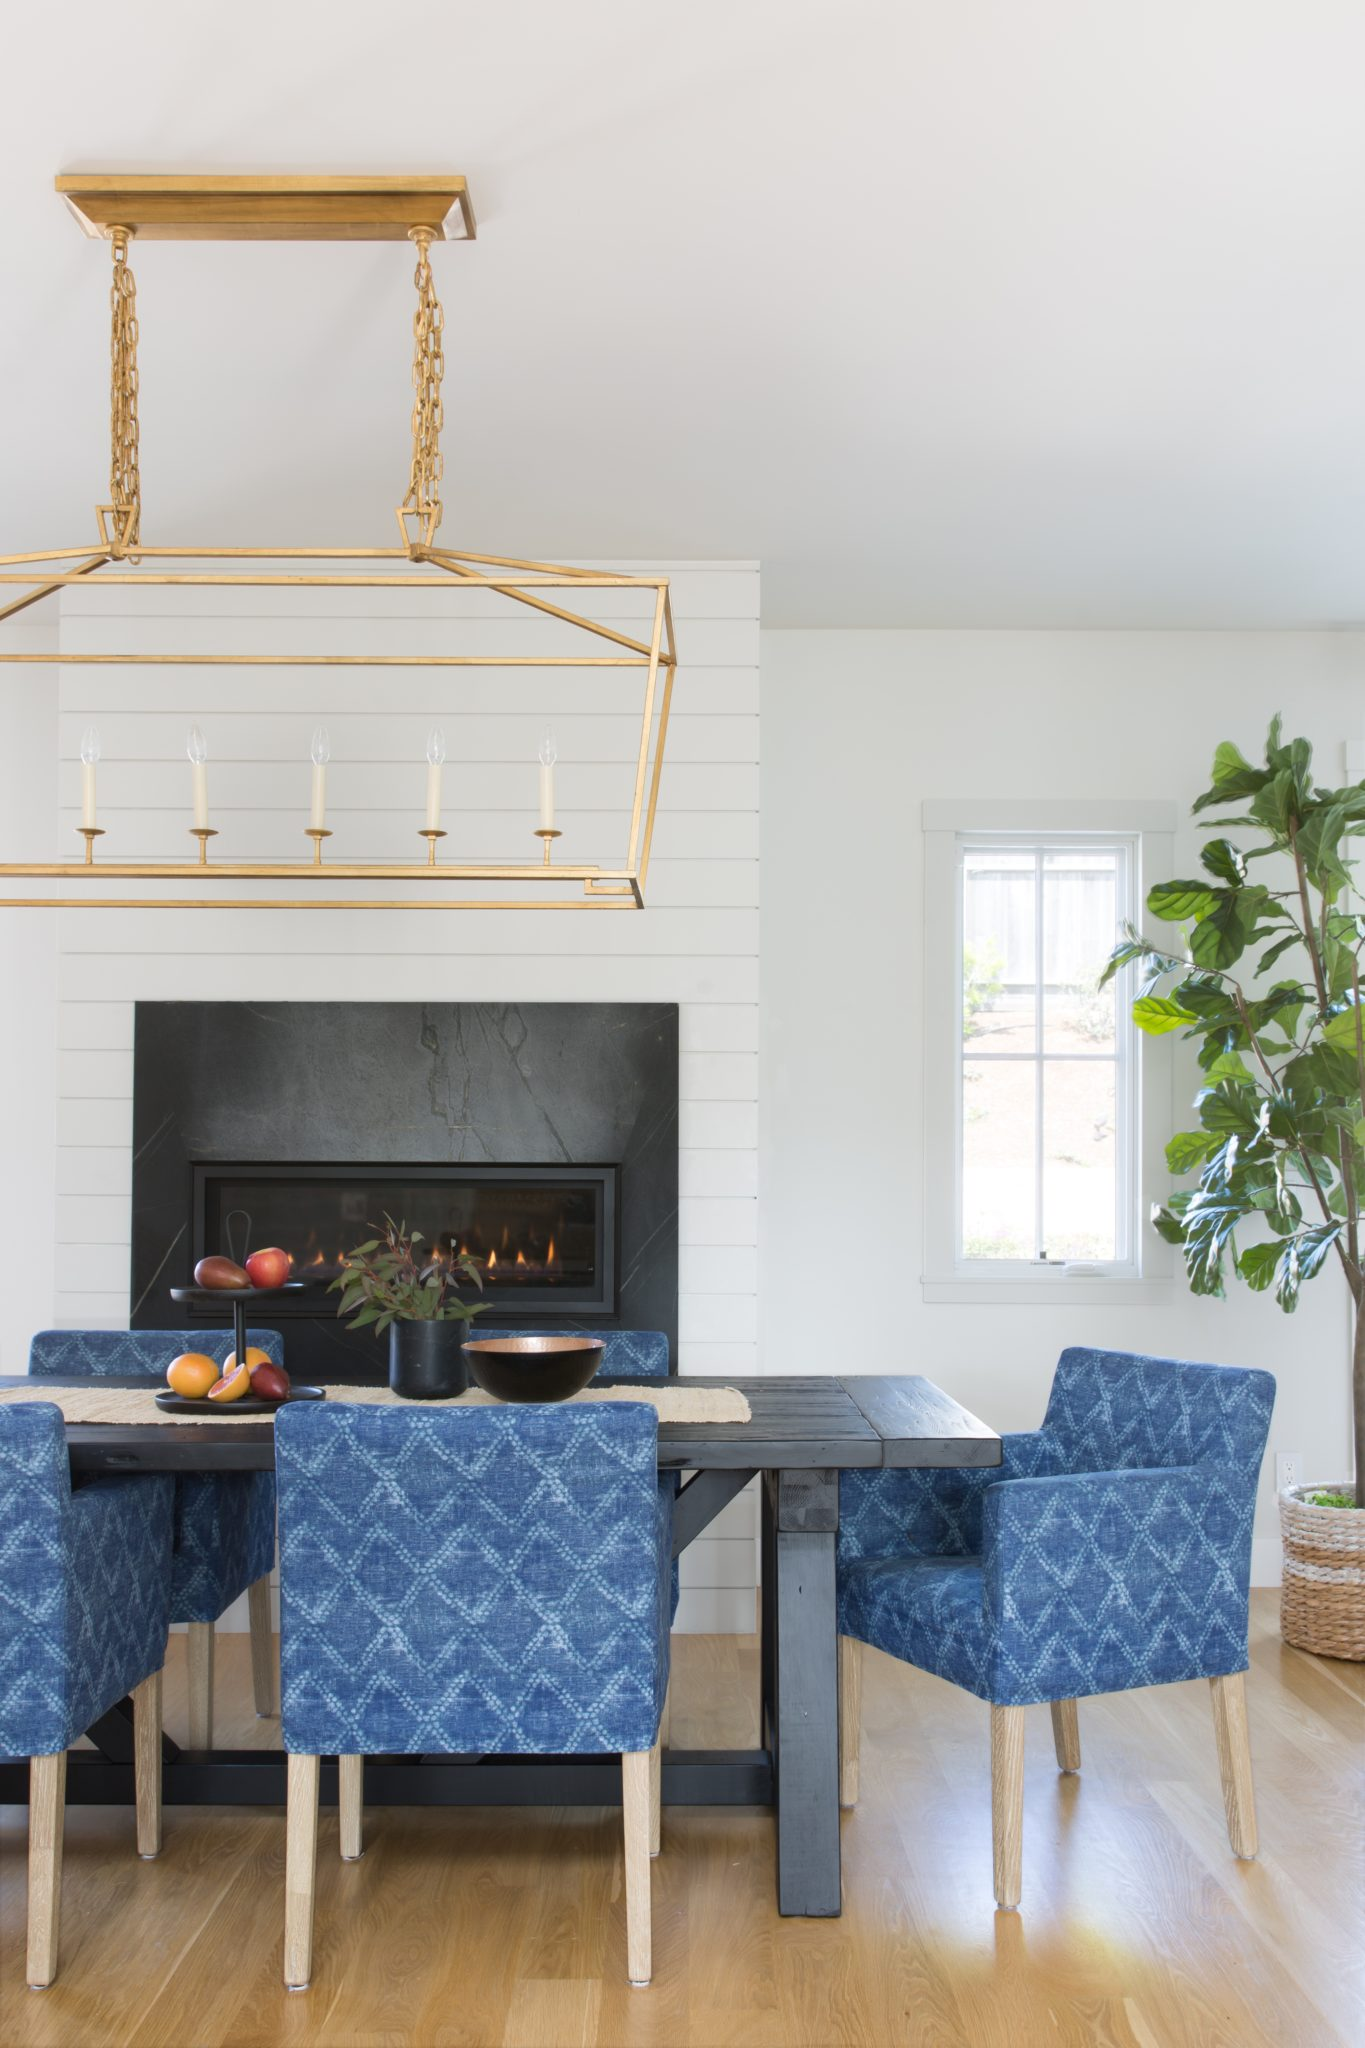 Dining room with shiplap, soapstone fireplace and blue boho dining chairs. by IDF Studio